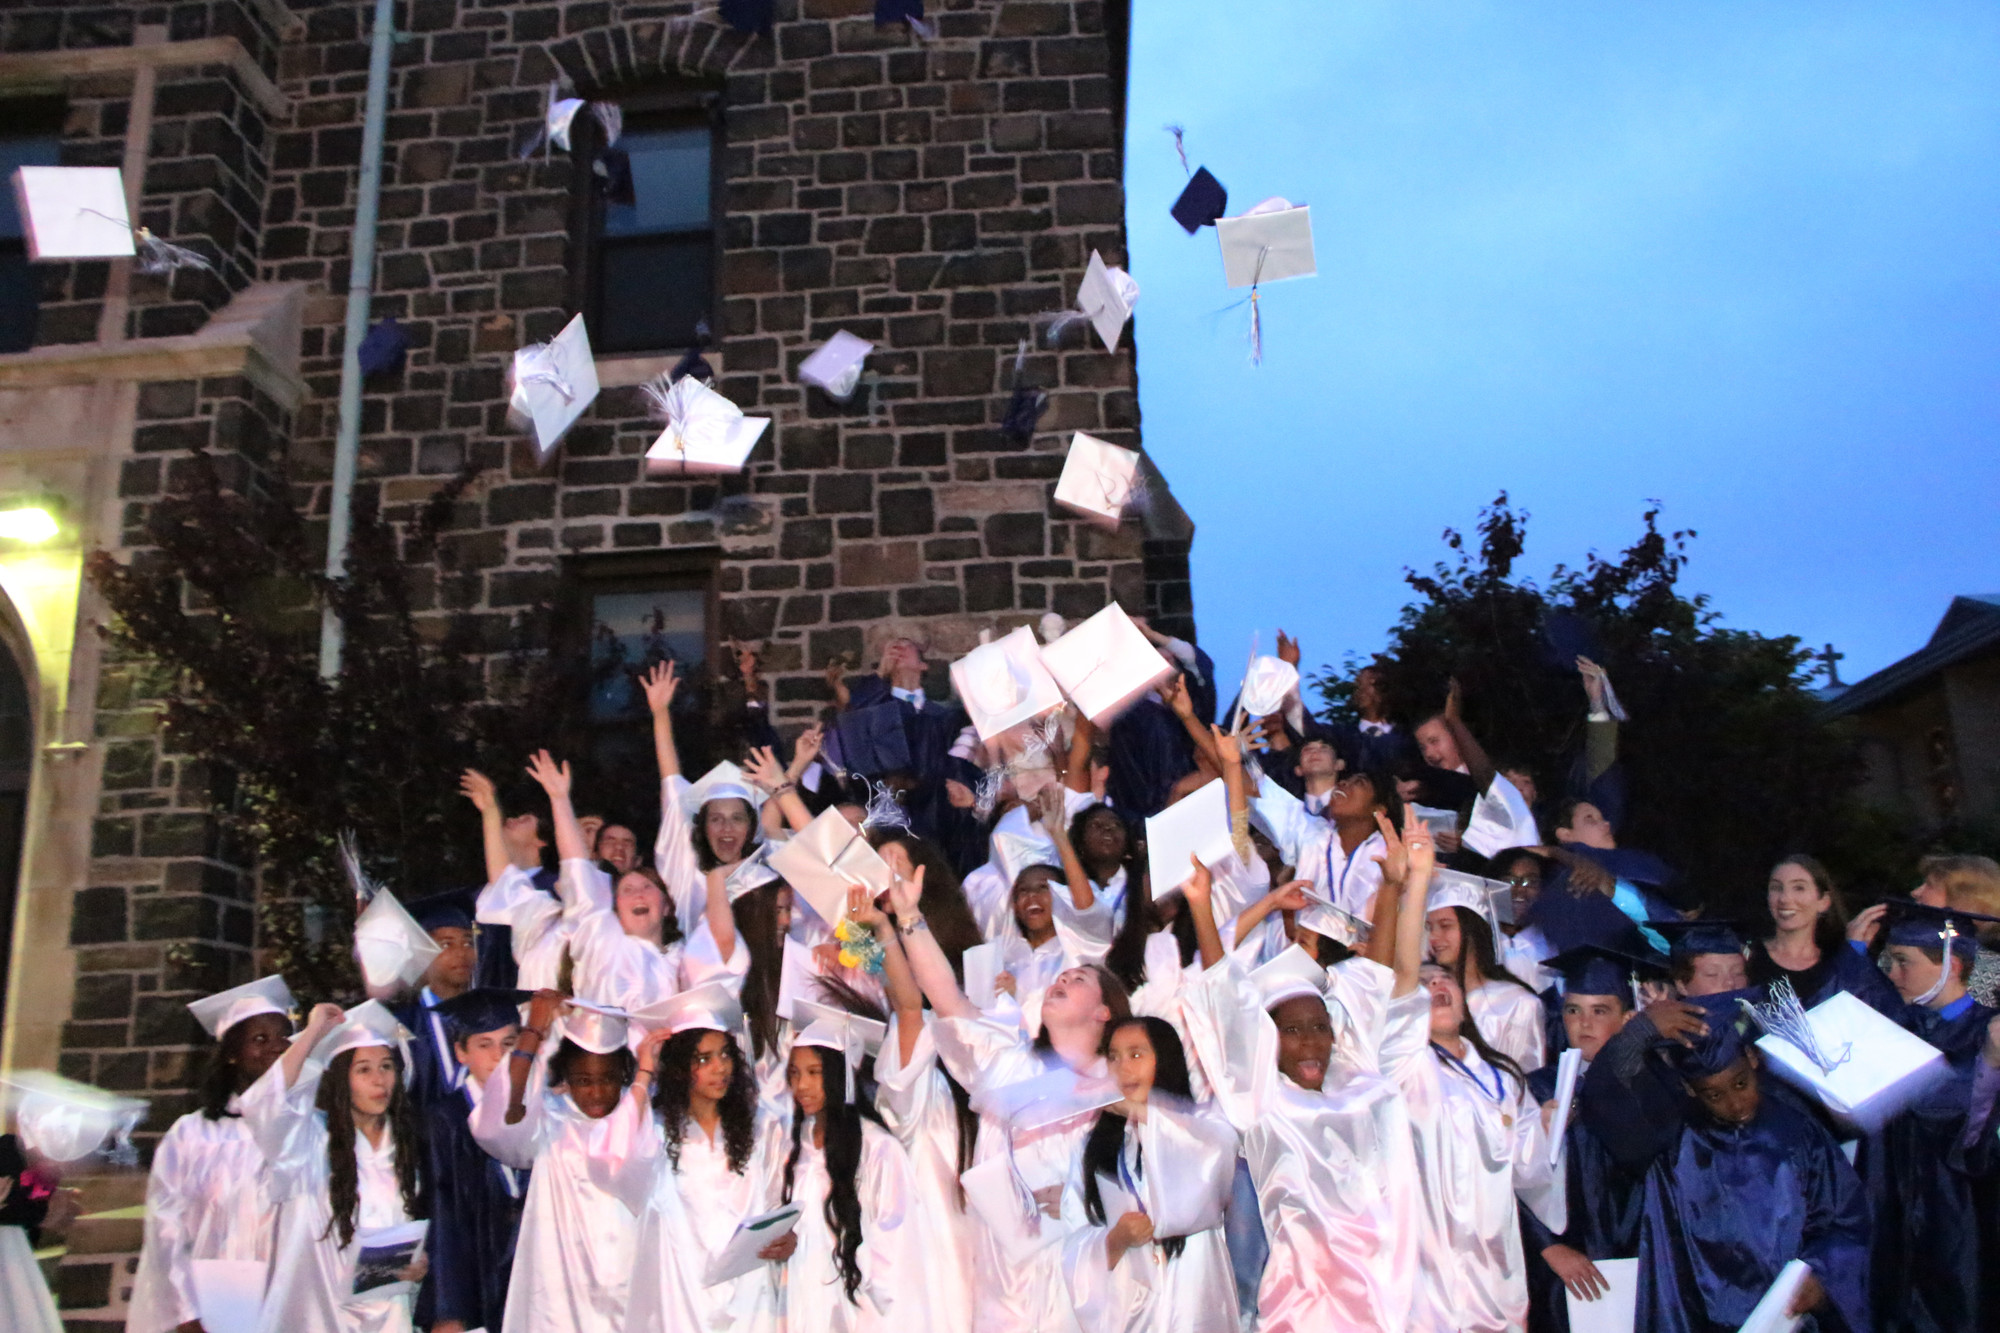 St. Christopher's Class of 2014, tossed their caps into the sky last week following their graducation ceremony.